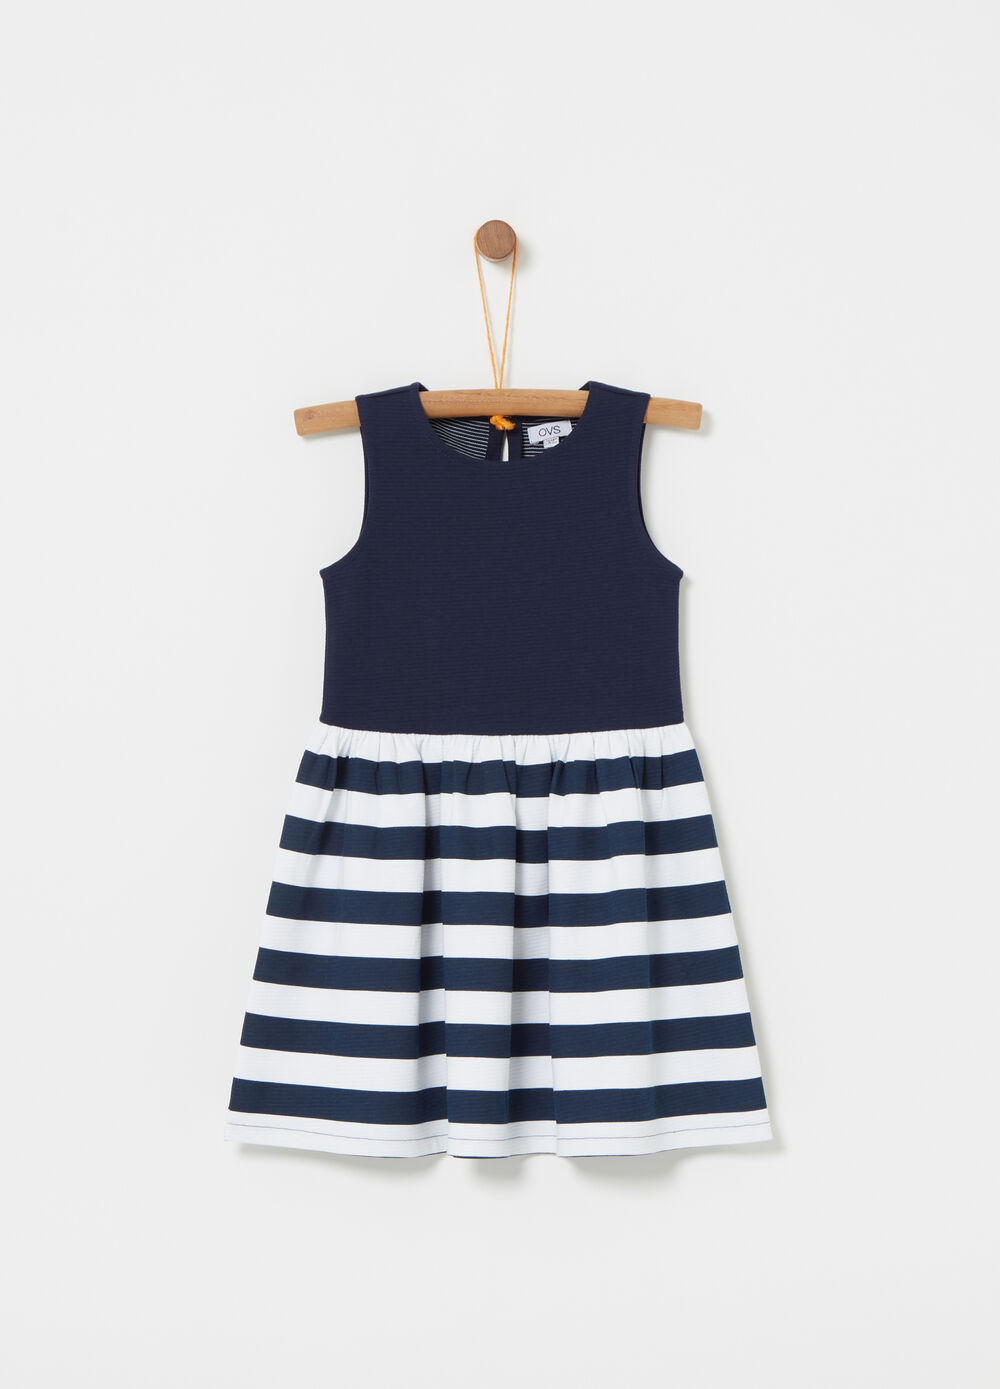 Sleeveless dress with striped skirt